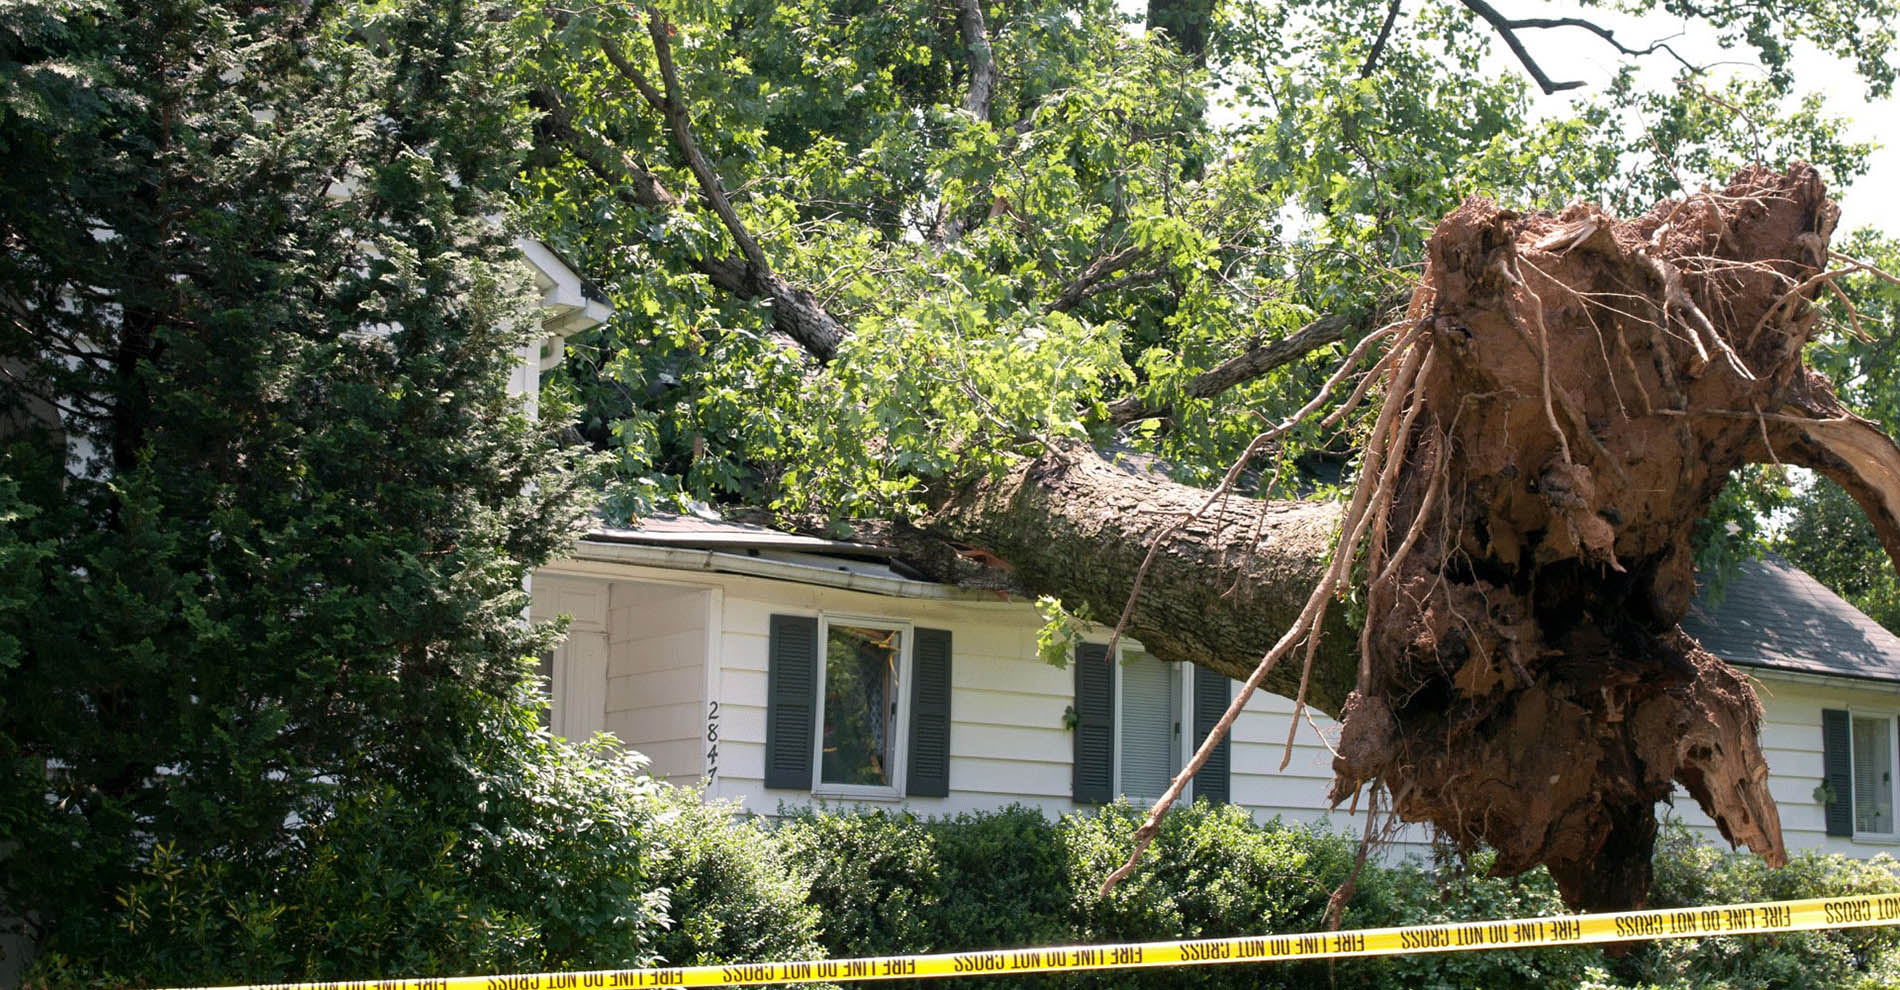 Emergency Tree Removal, Storm Damage Control, & Assessment